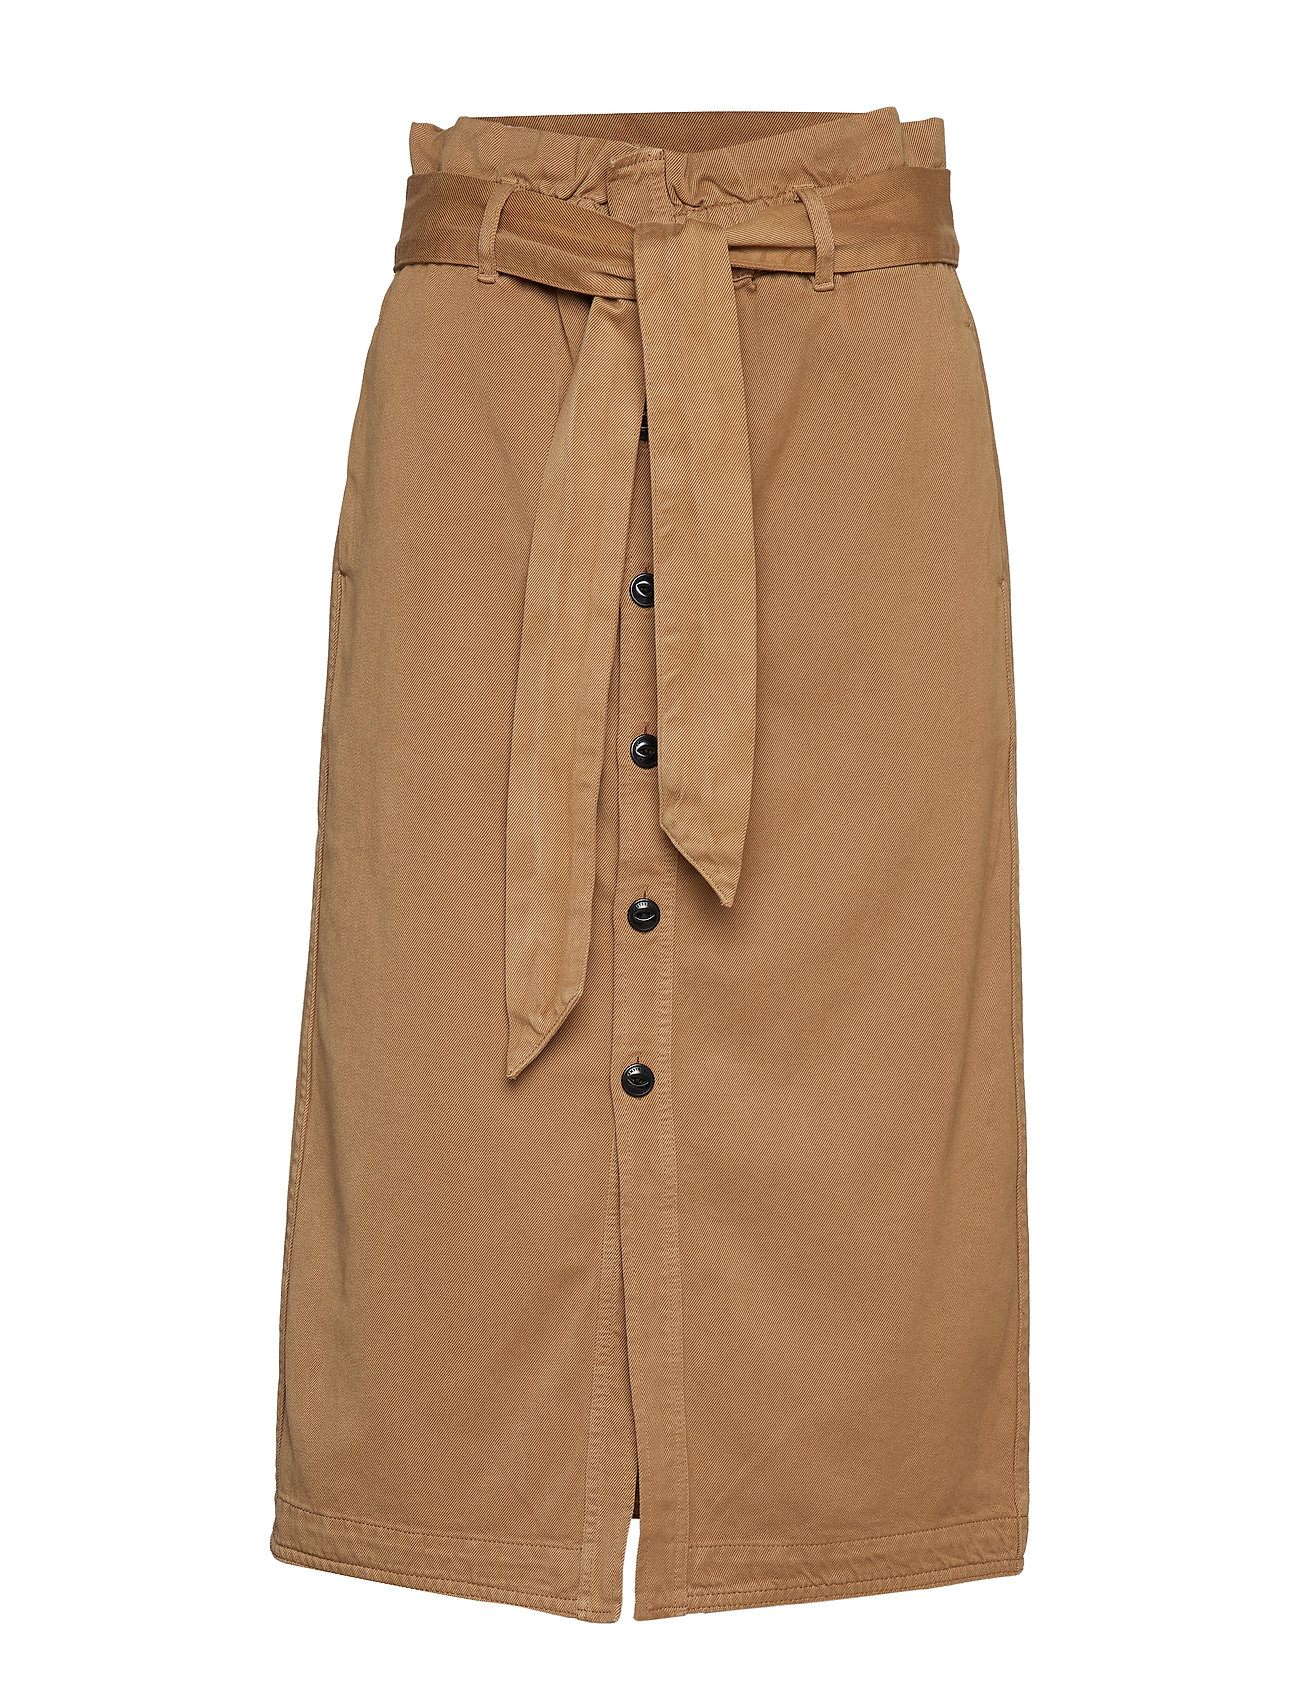 Scotch & Soda High waisted skirt in drapy quality - SAND